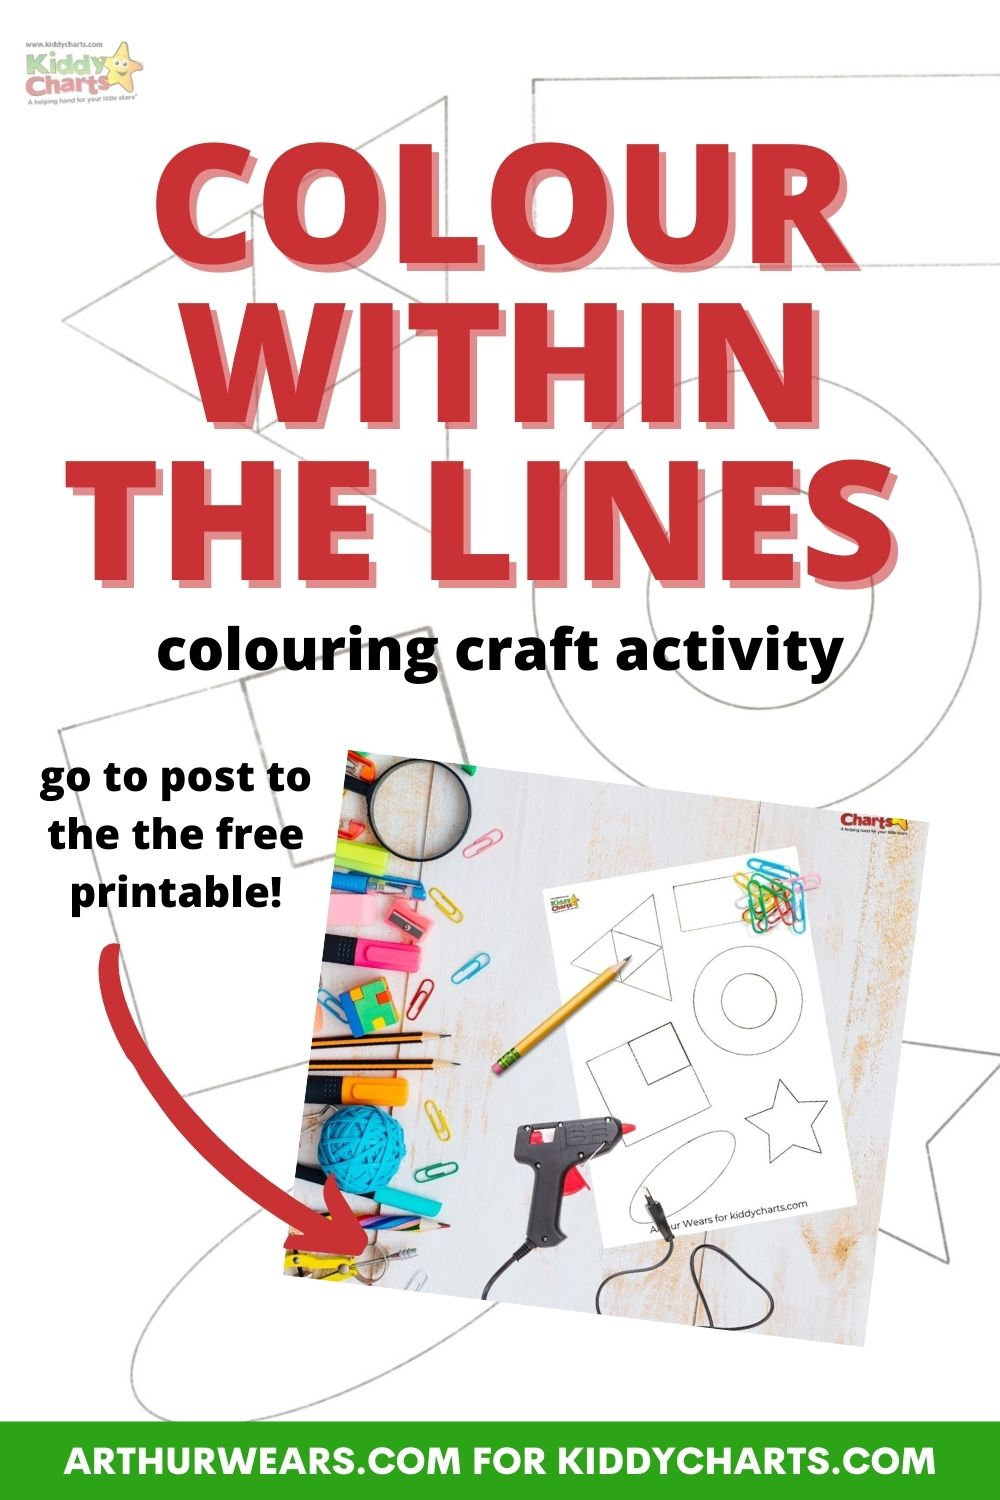 Colouring craft activity